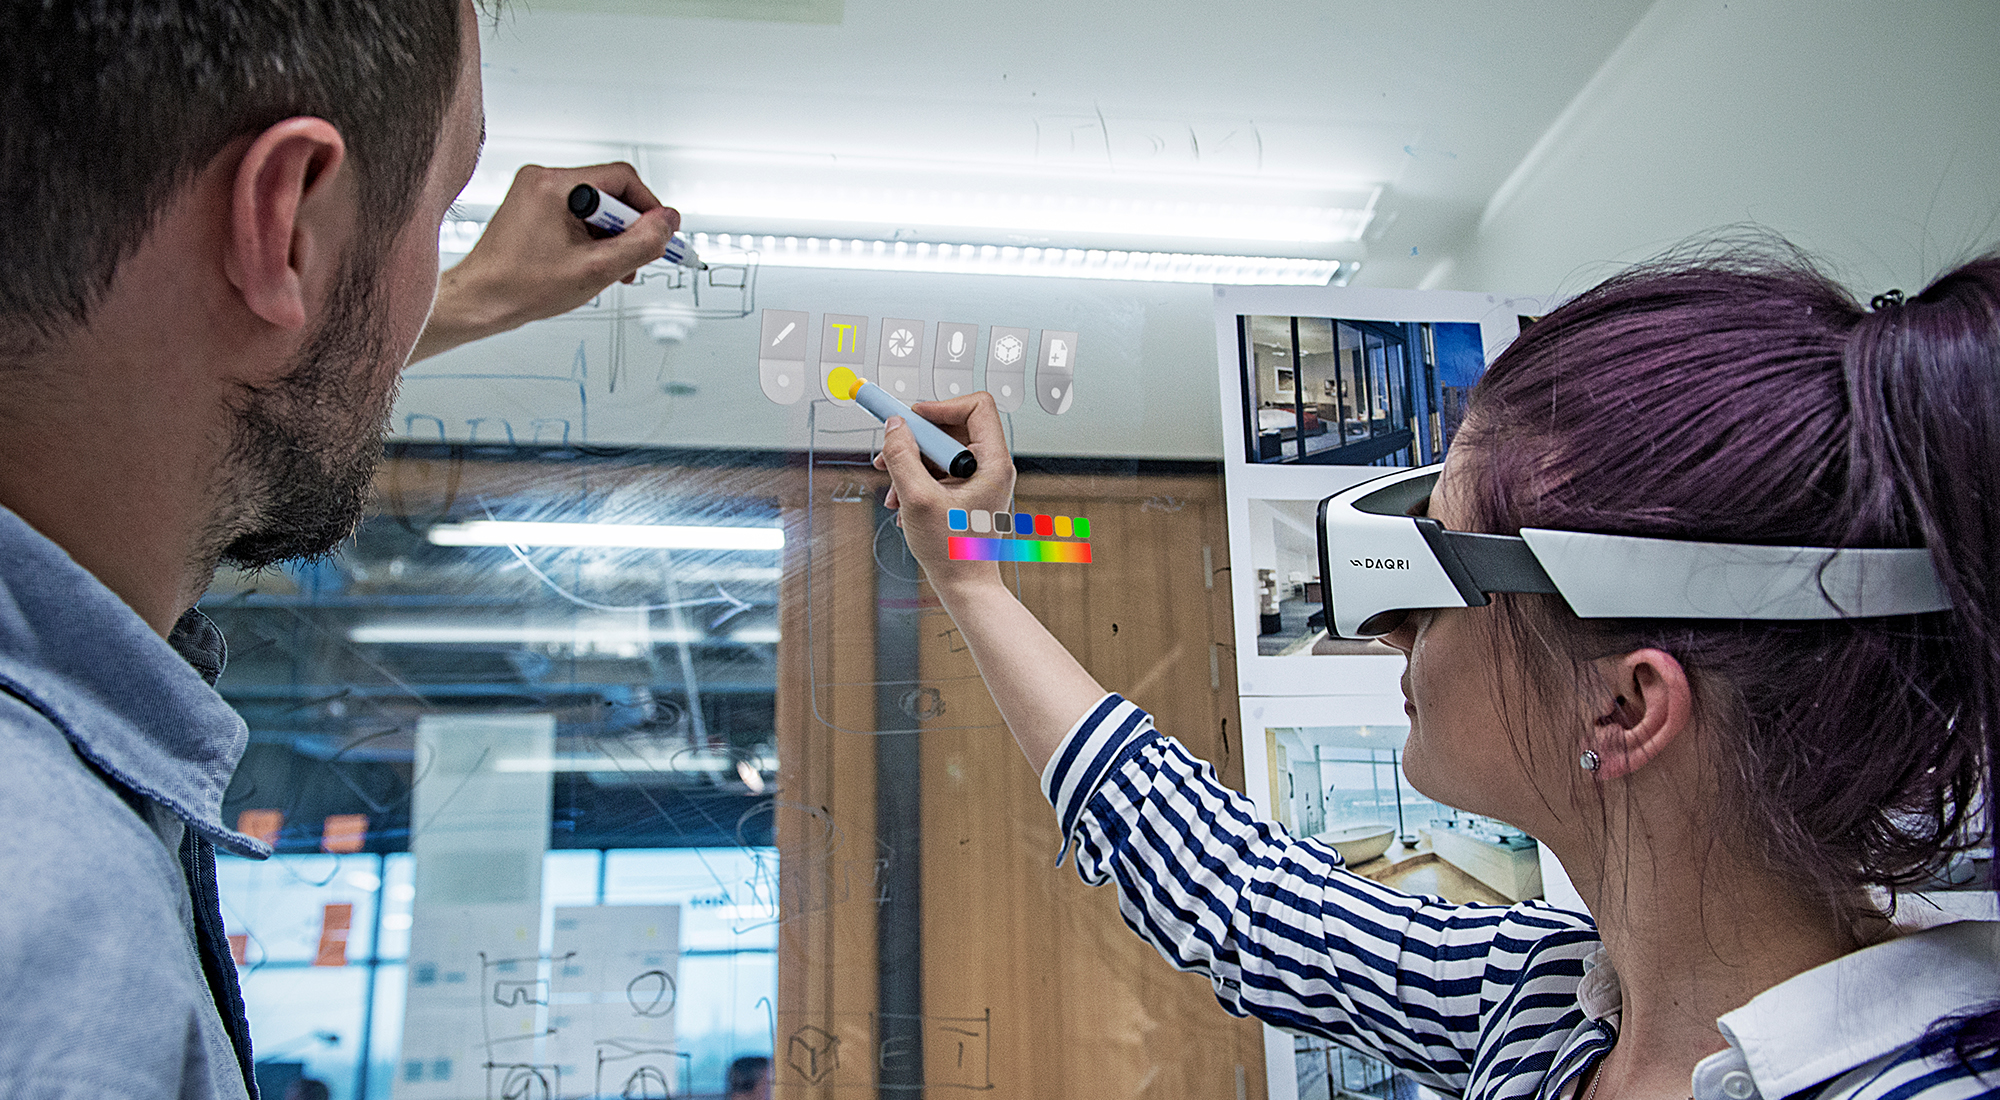 5 insights from designing in Mixed Reality